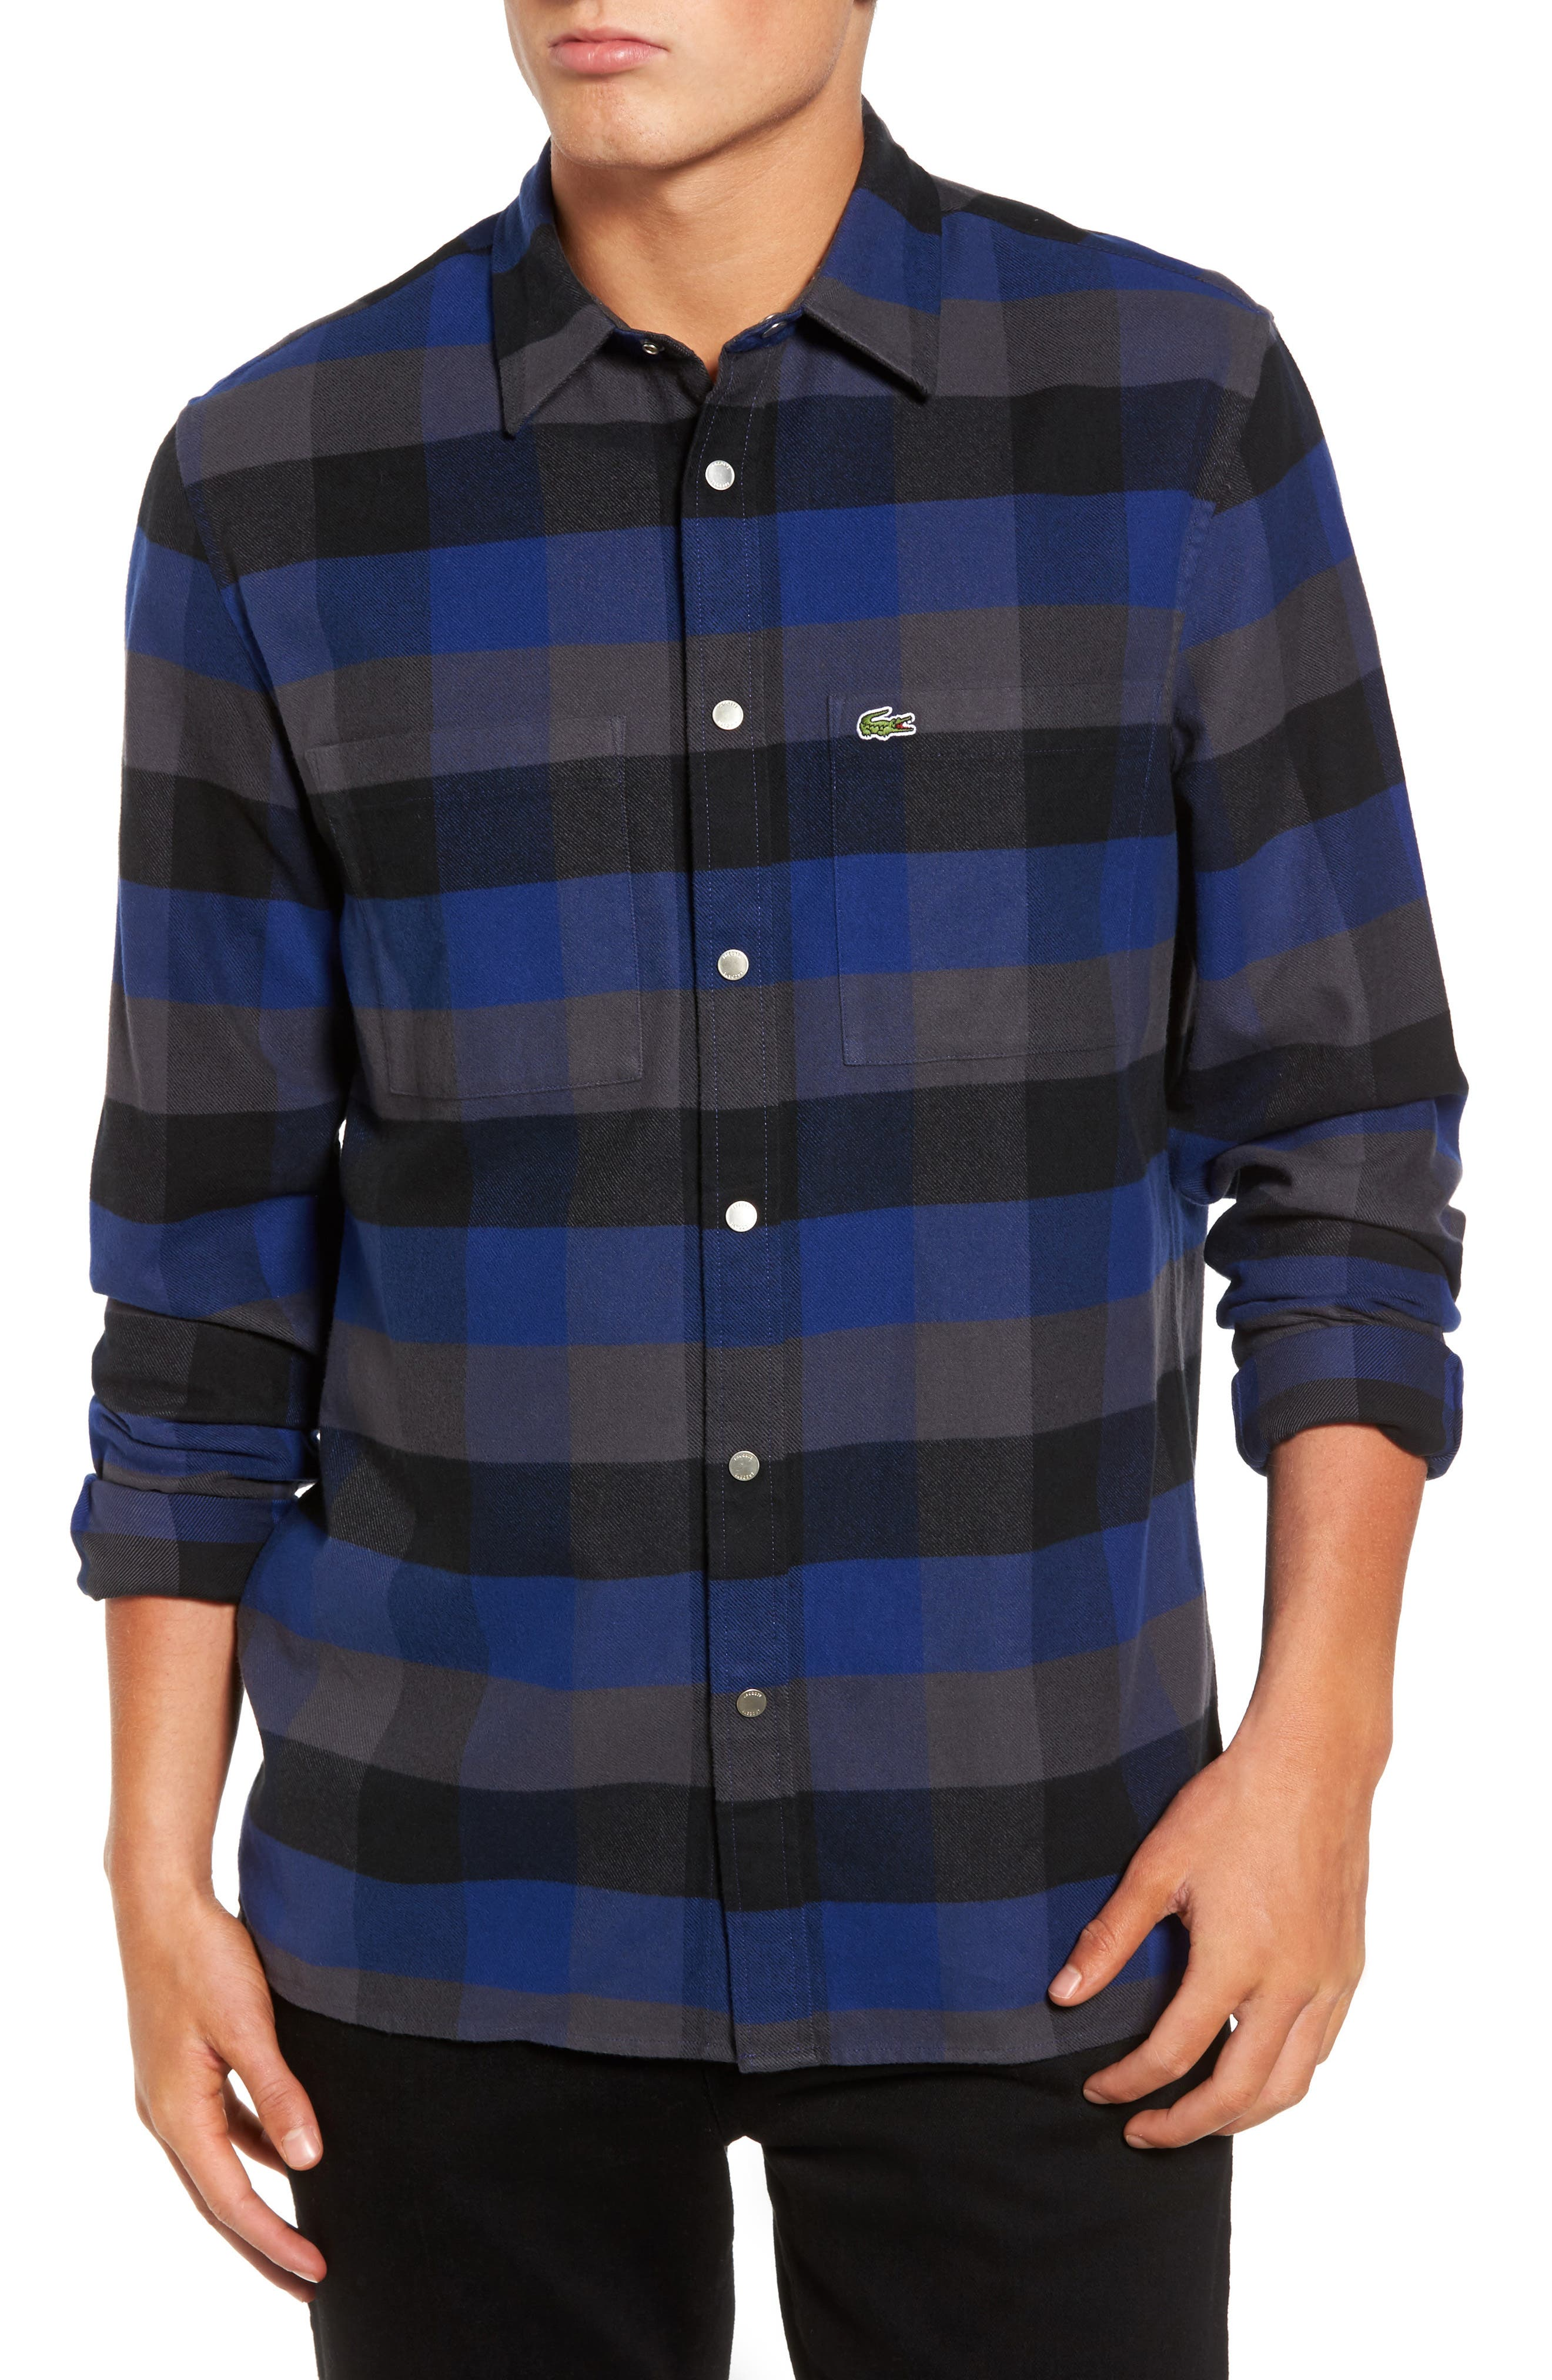 Lacoste Check Flannel Shirt